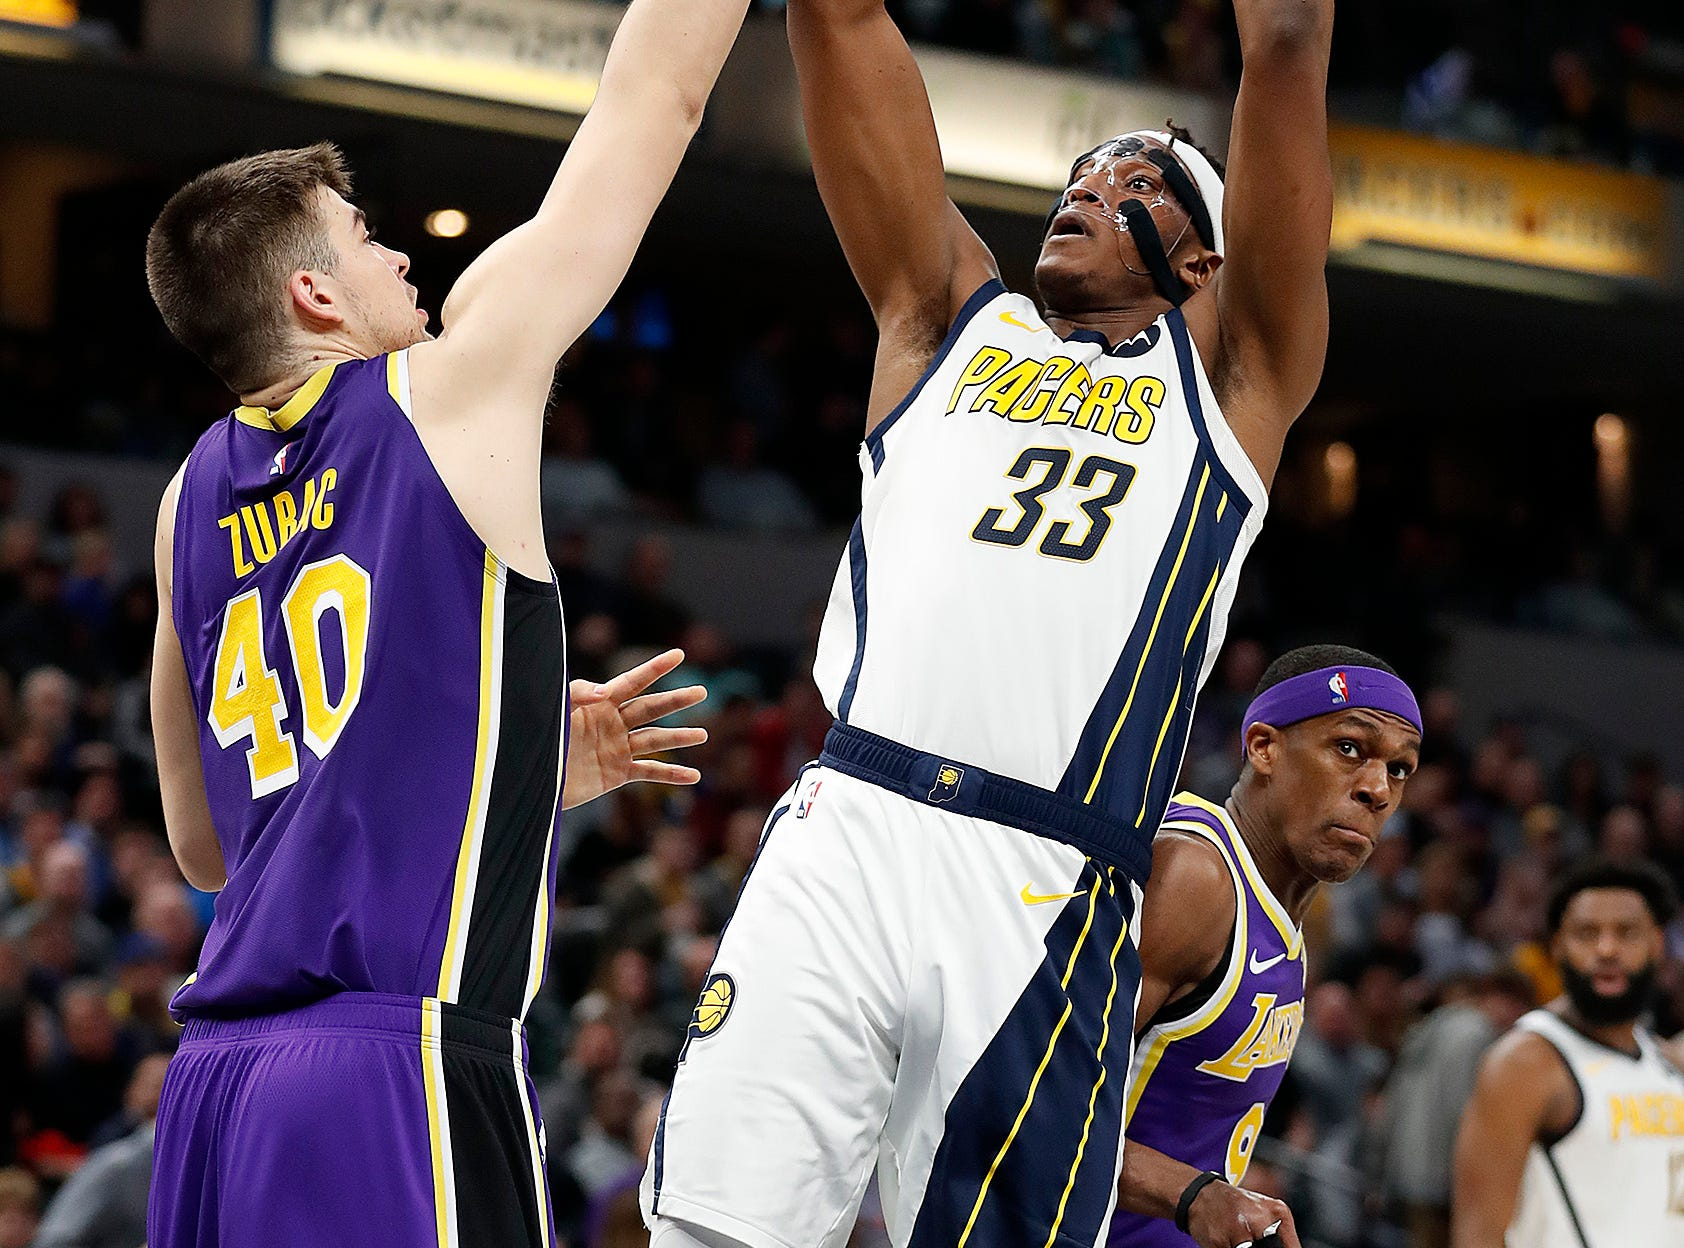 Indiana Pacers center Myles Turner (33) shoots over Los Angeles Lakers center Ivica Zubac (40) in the second half of their game at Bankers Life Fieldhouse on Tuesday, Feb. 5, 2019.